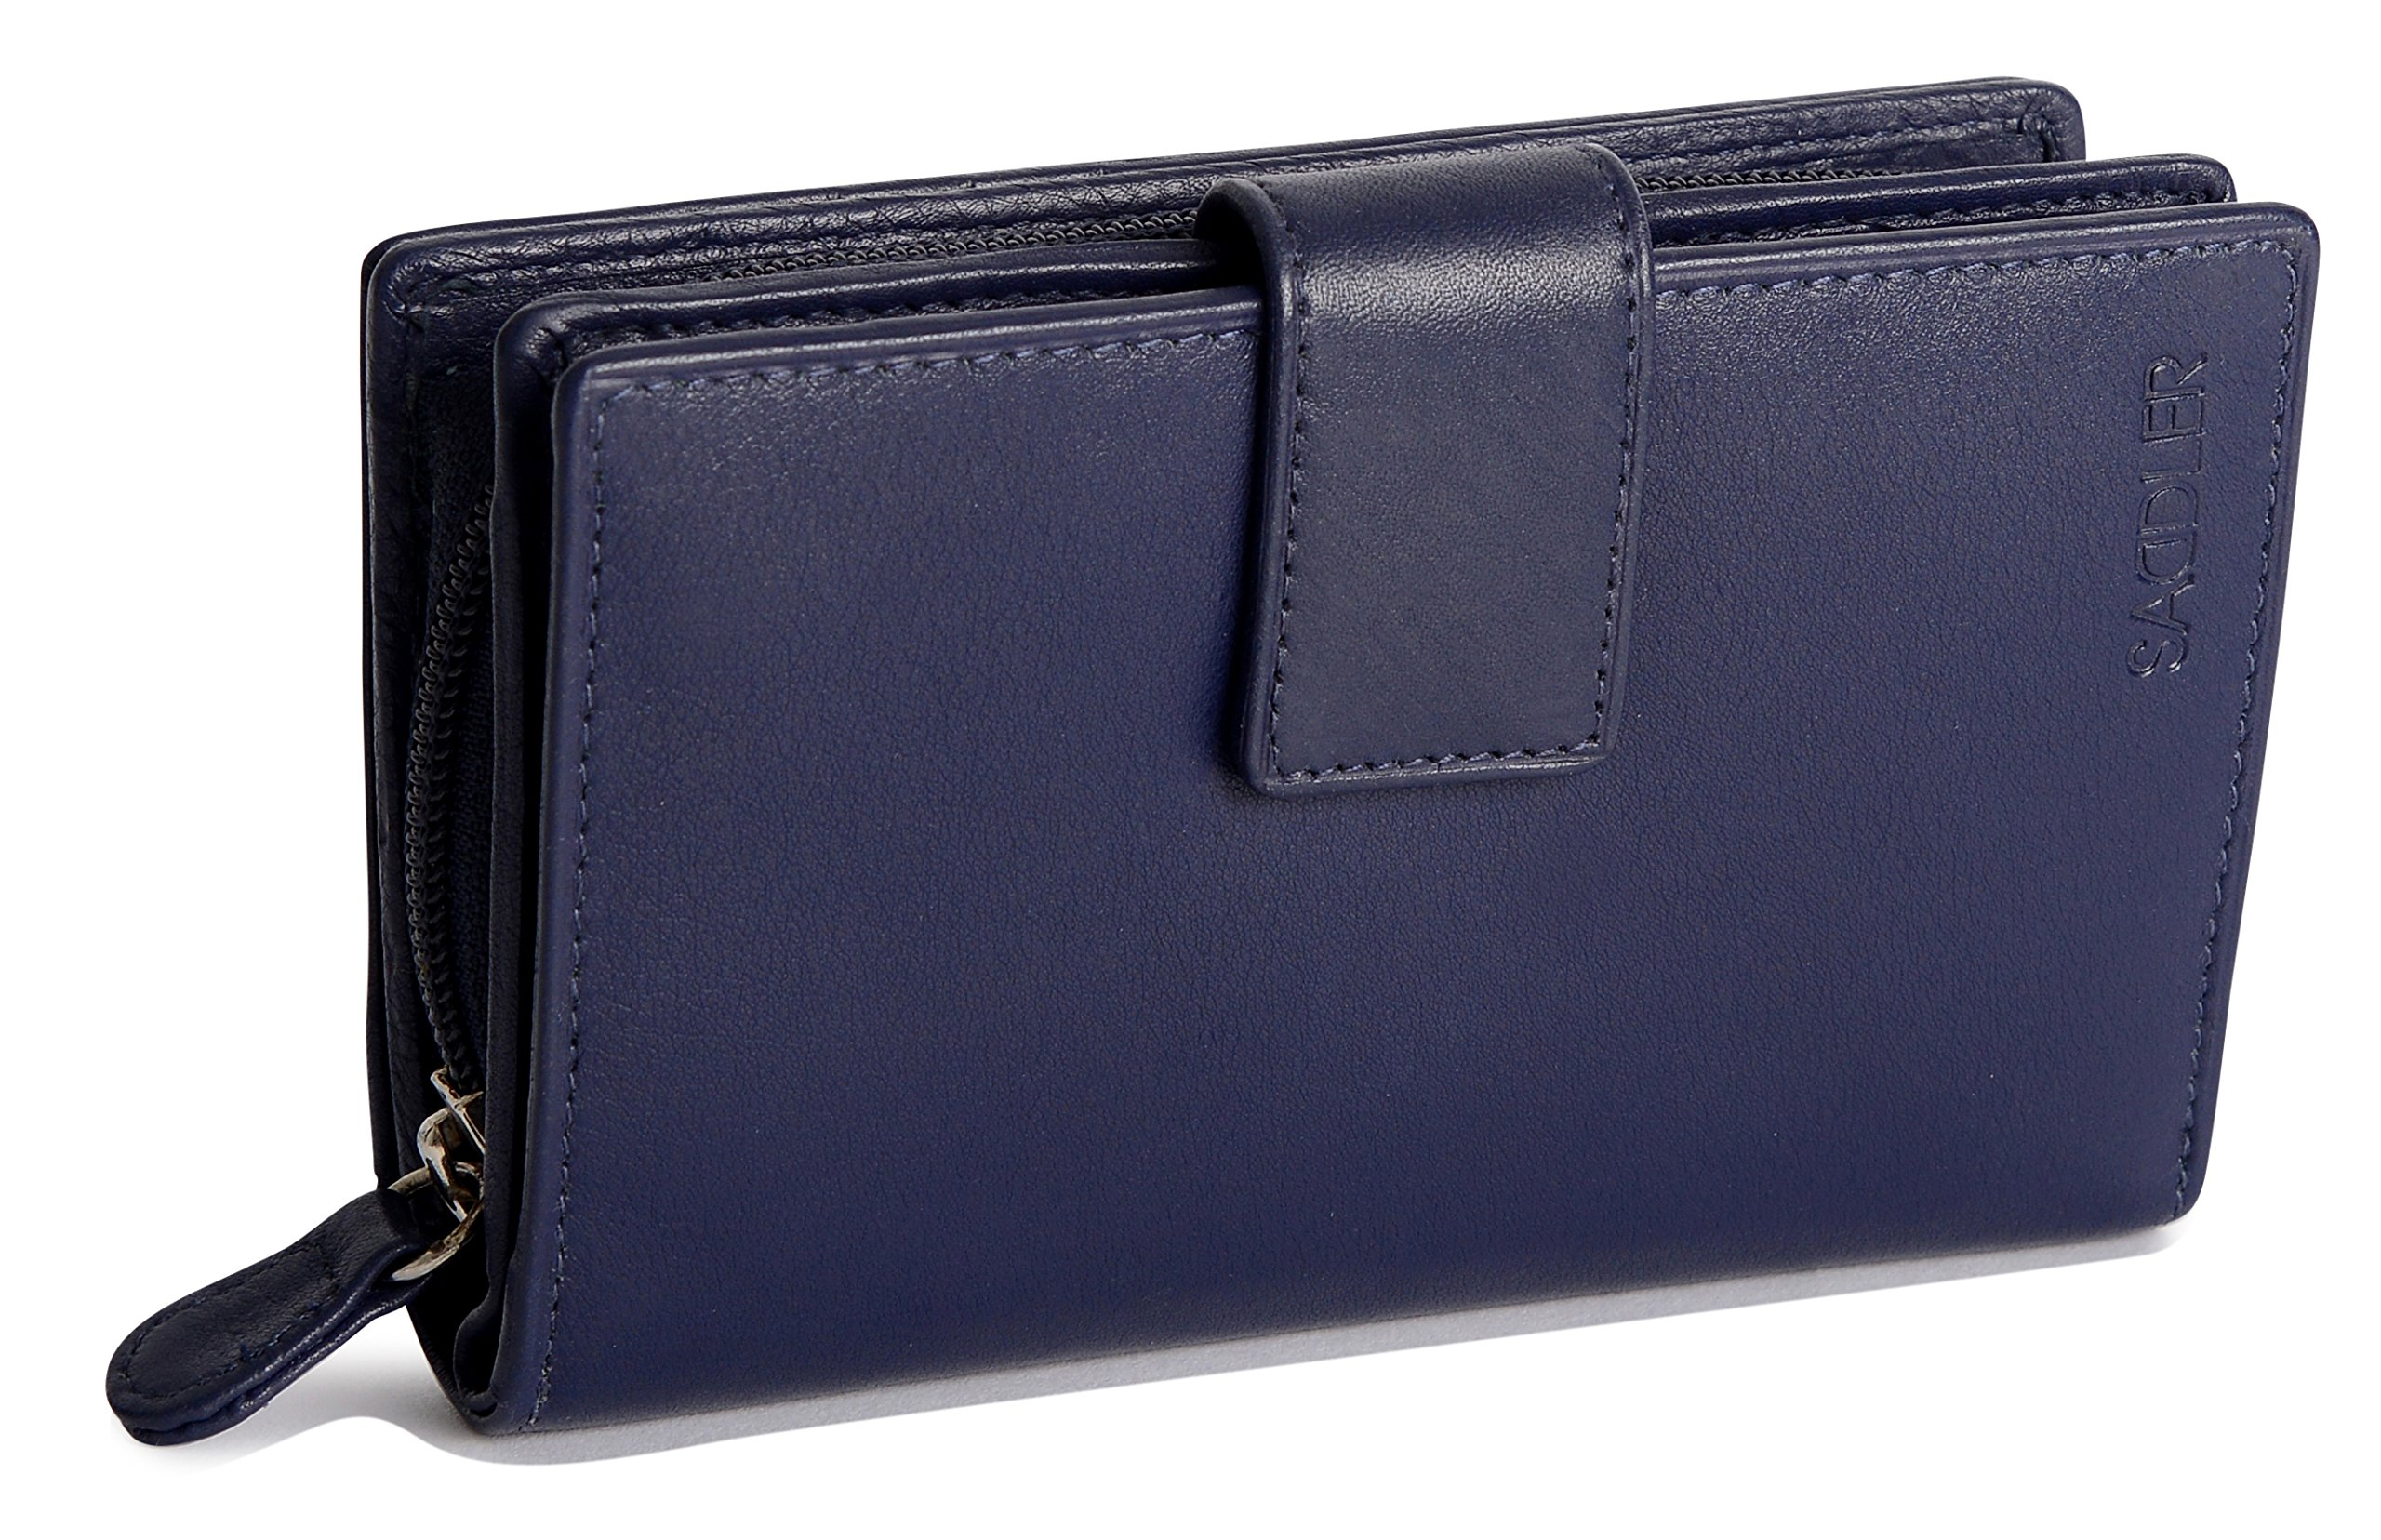 SADDLER Womens Leather High Volume Womens Tab Wallet Zipper Purse - Peacoat Blue